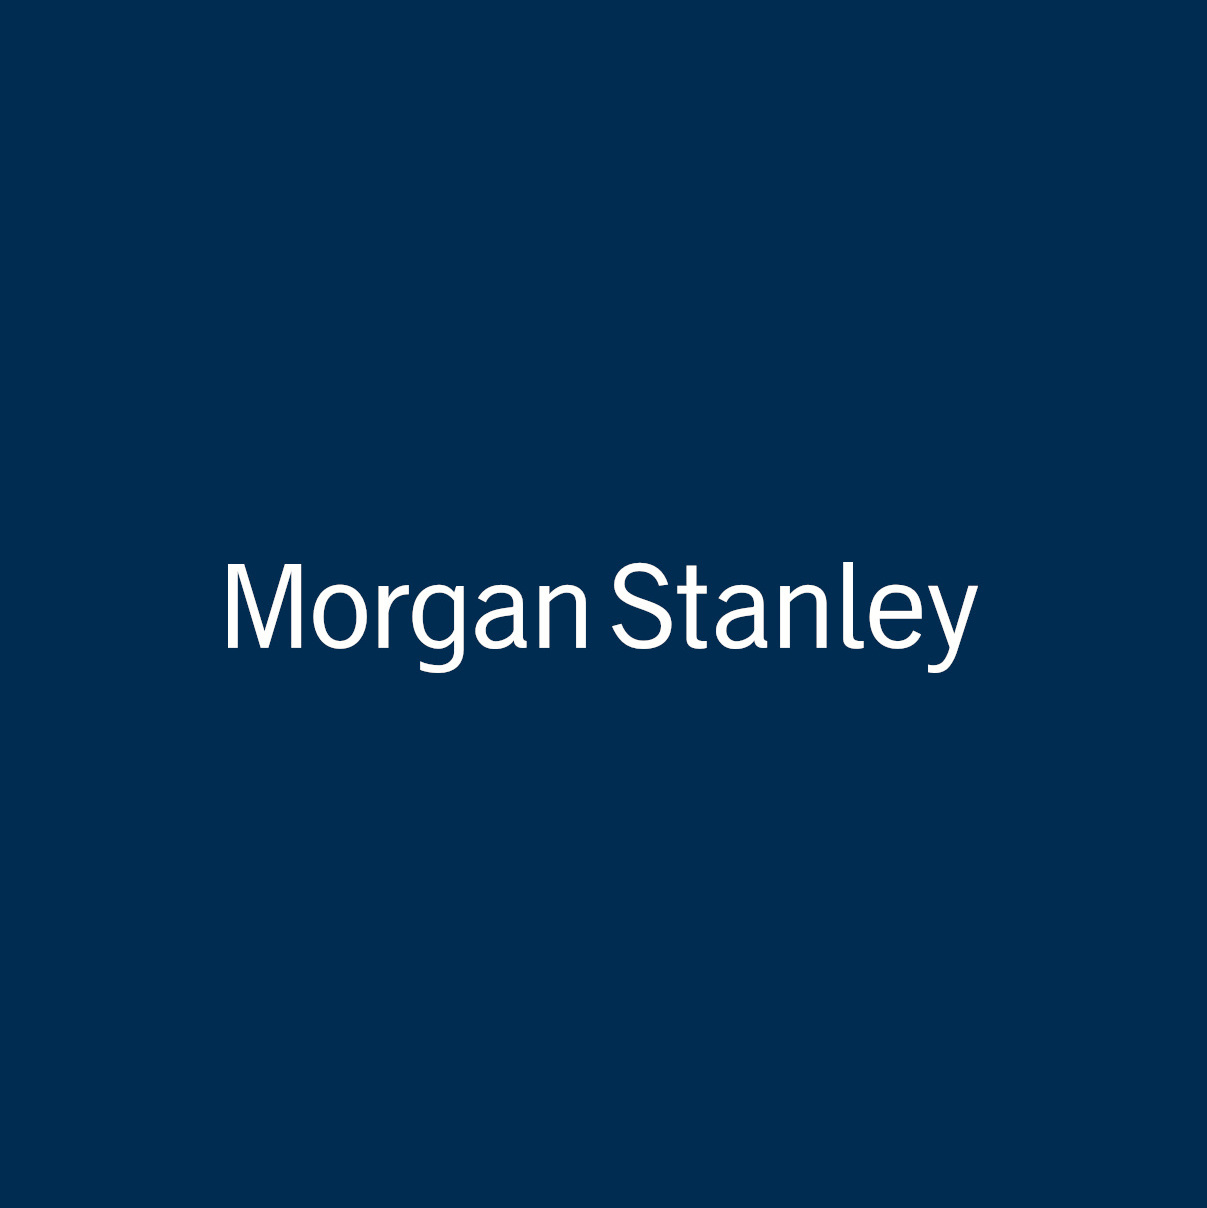 Morgan Stanley Responsive Website